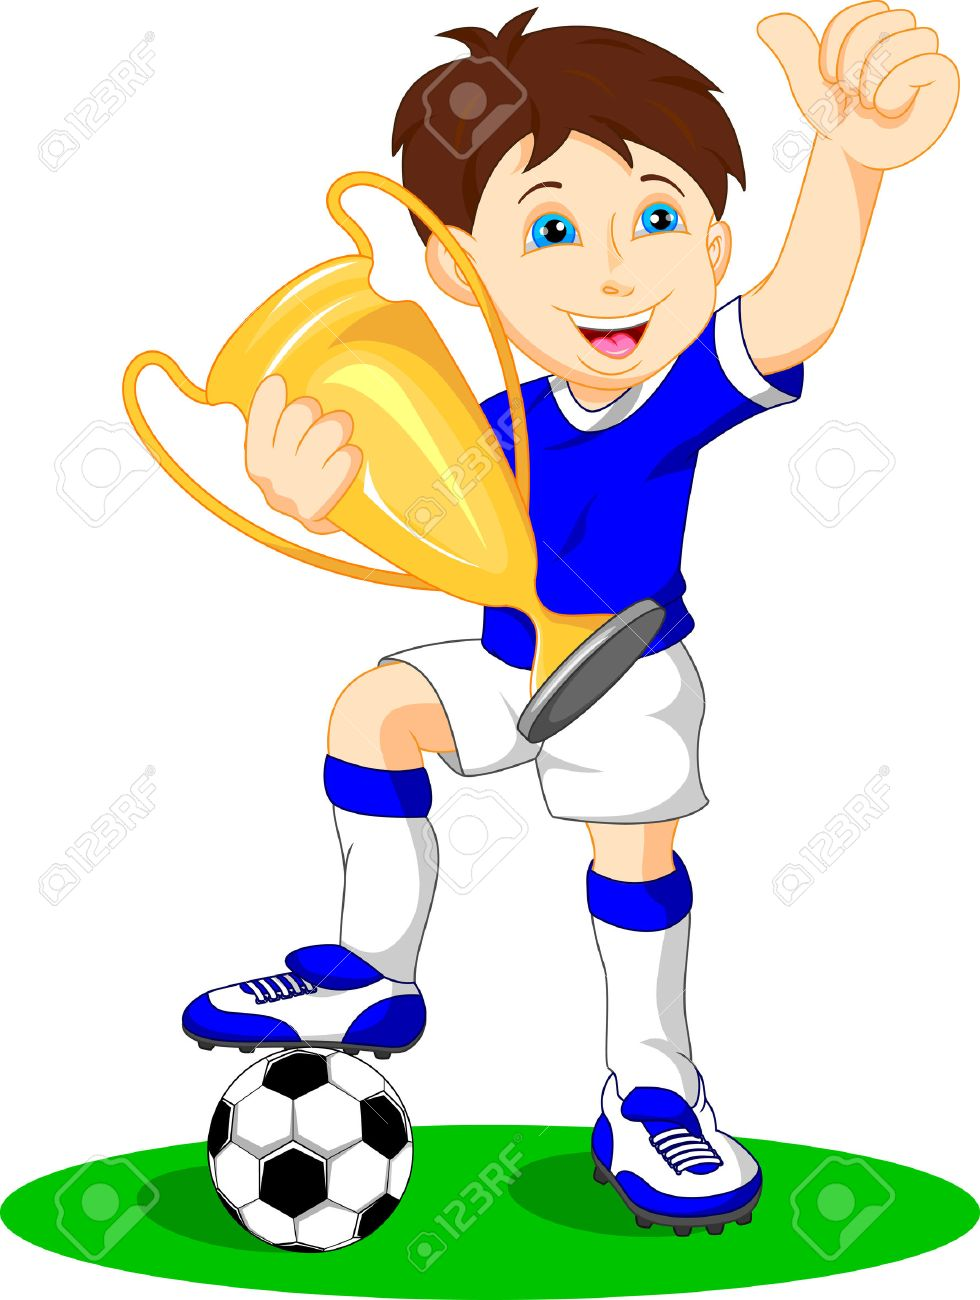 Footbawler clipart png free library Footballer clipart 4 » Clipart Station png free library